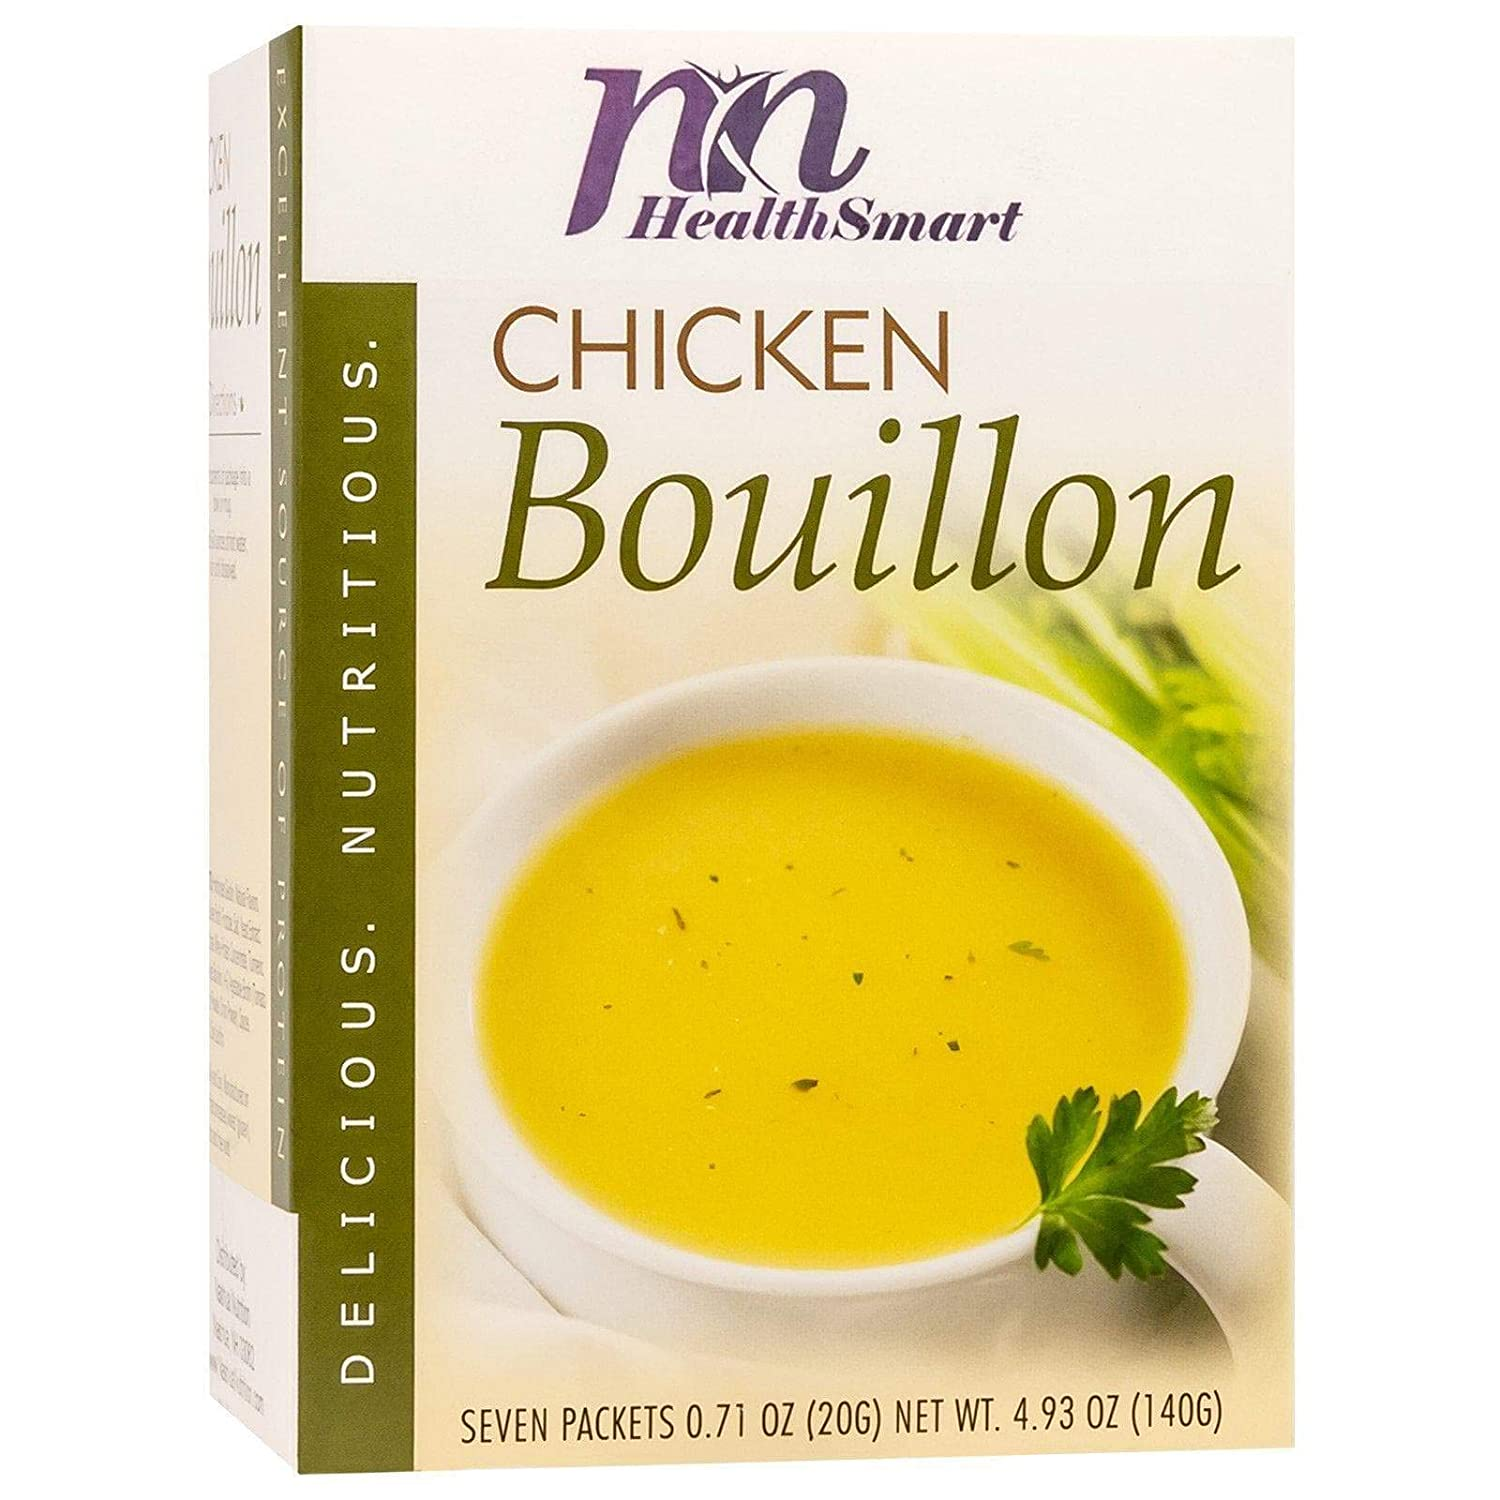 HealthSmart High Protein Chicken Max 64% OFF Low Soup Bouillon 15g Ranking TOP13